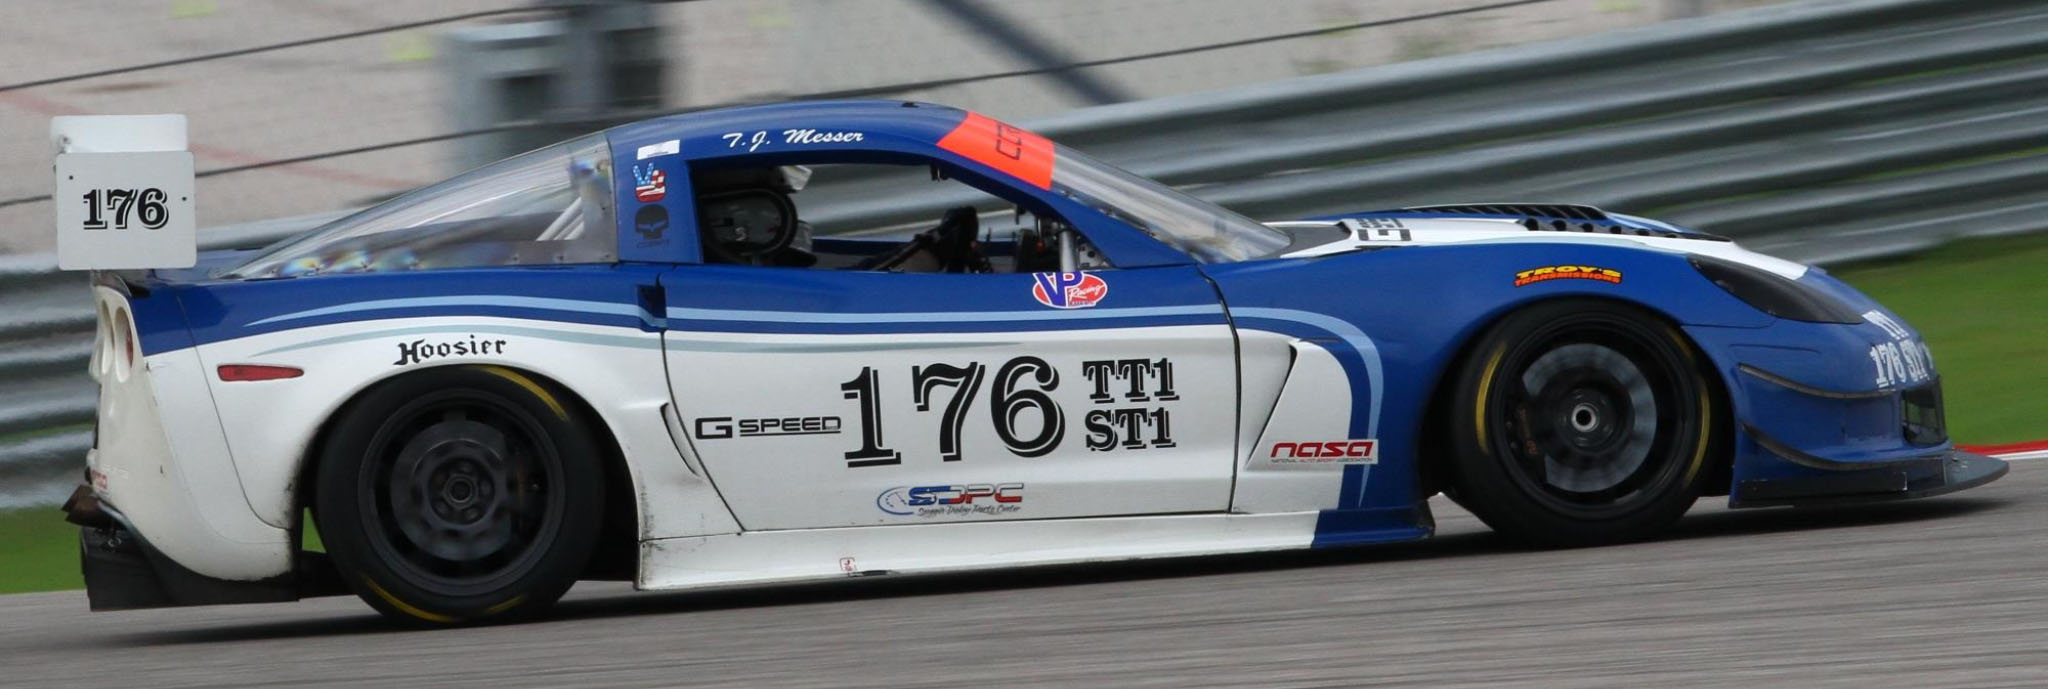 One Shop, Two NASA Championship-Winning Corvettes: GSpeed Does The Math